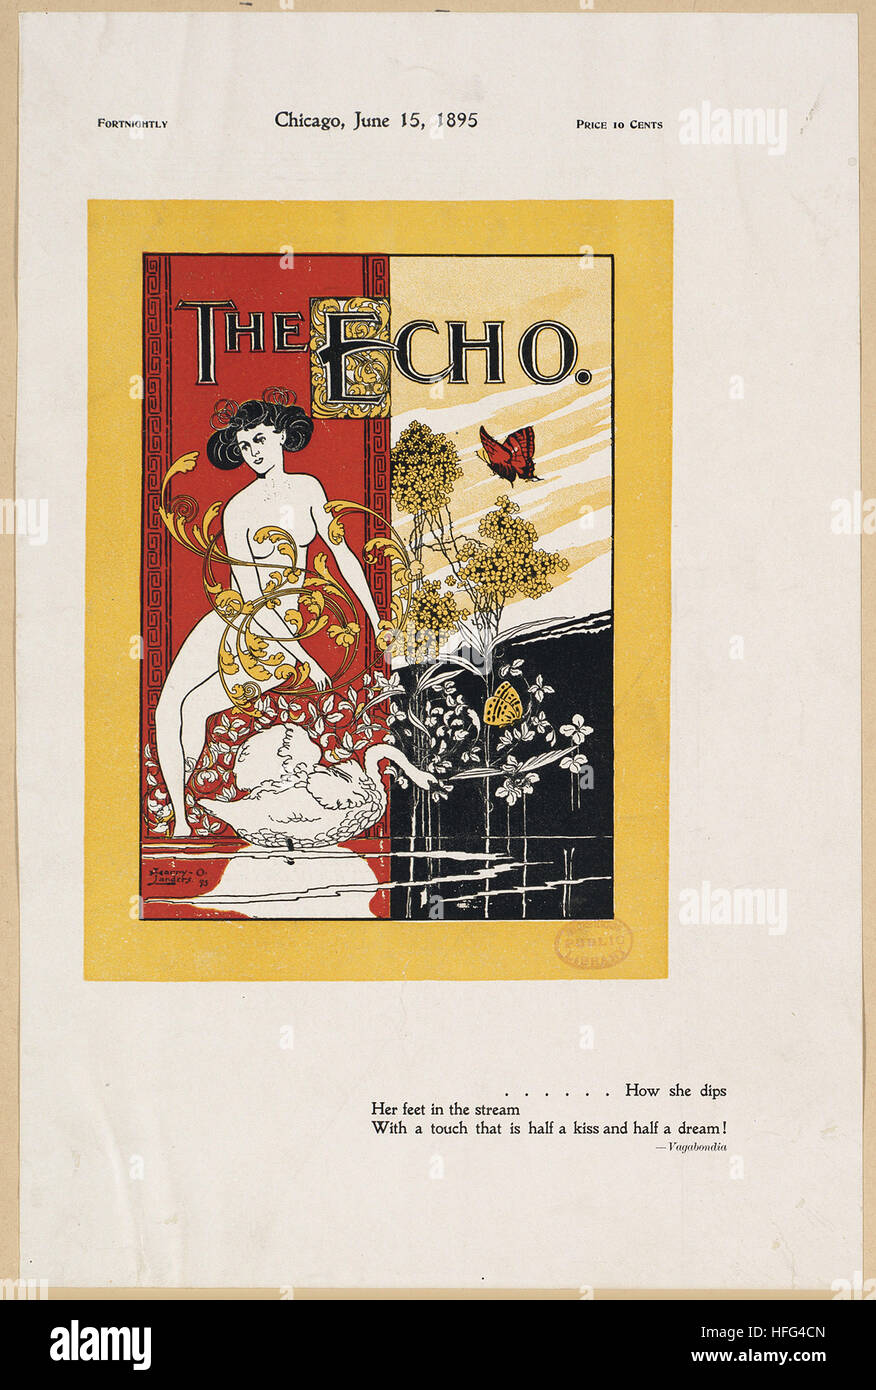 The echo, Chicago, June 15, 1895 - Stock Image